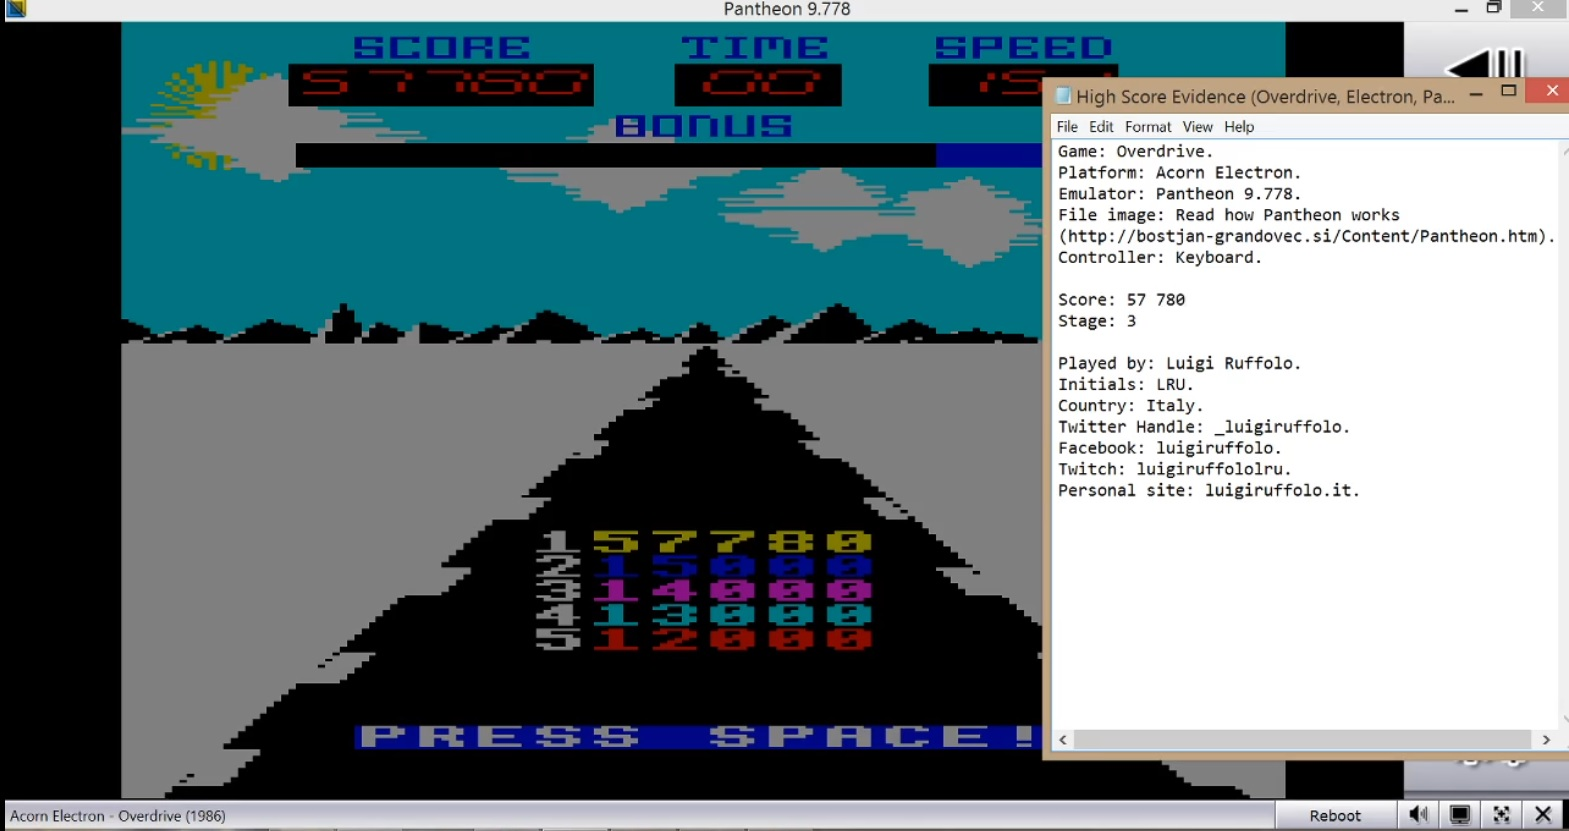 LuigiRuffolo: Overdrive (Acorn Electron Emulated) 57,780 points on 2020-08-02 07:30:41